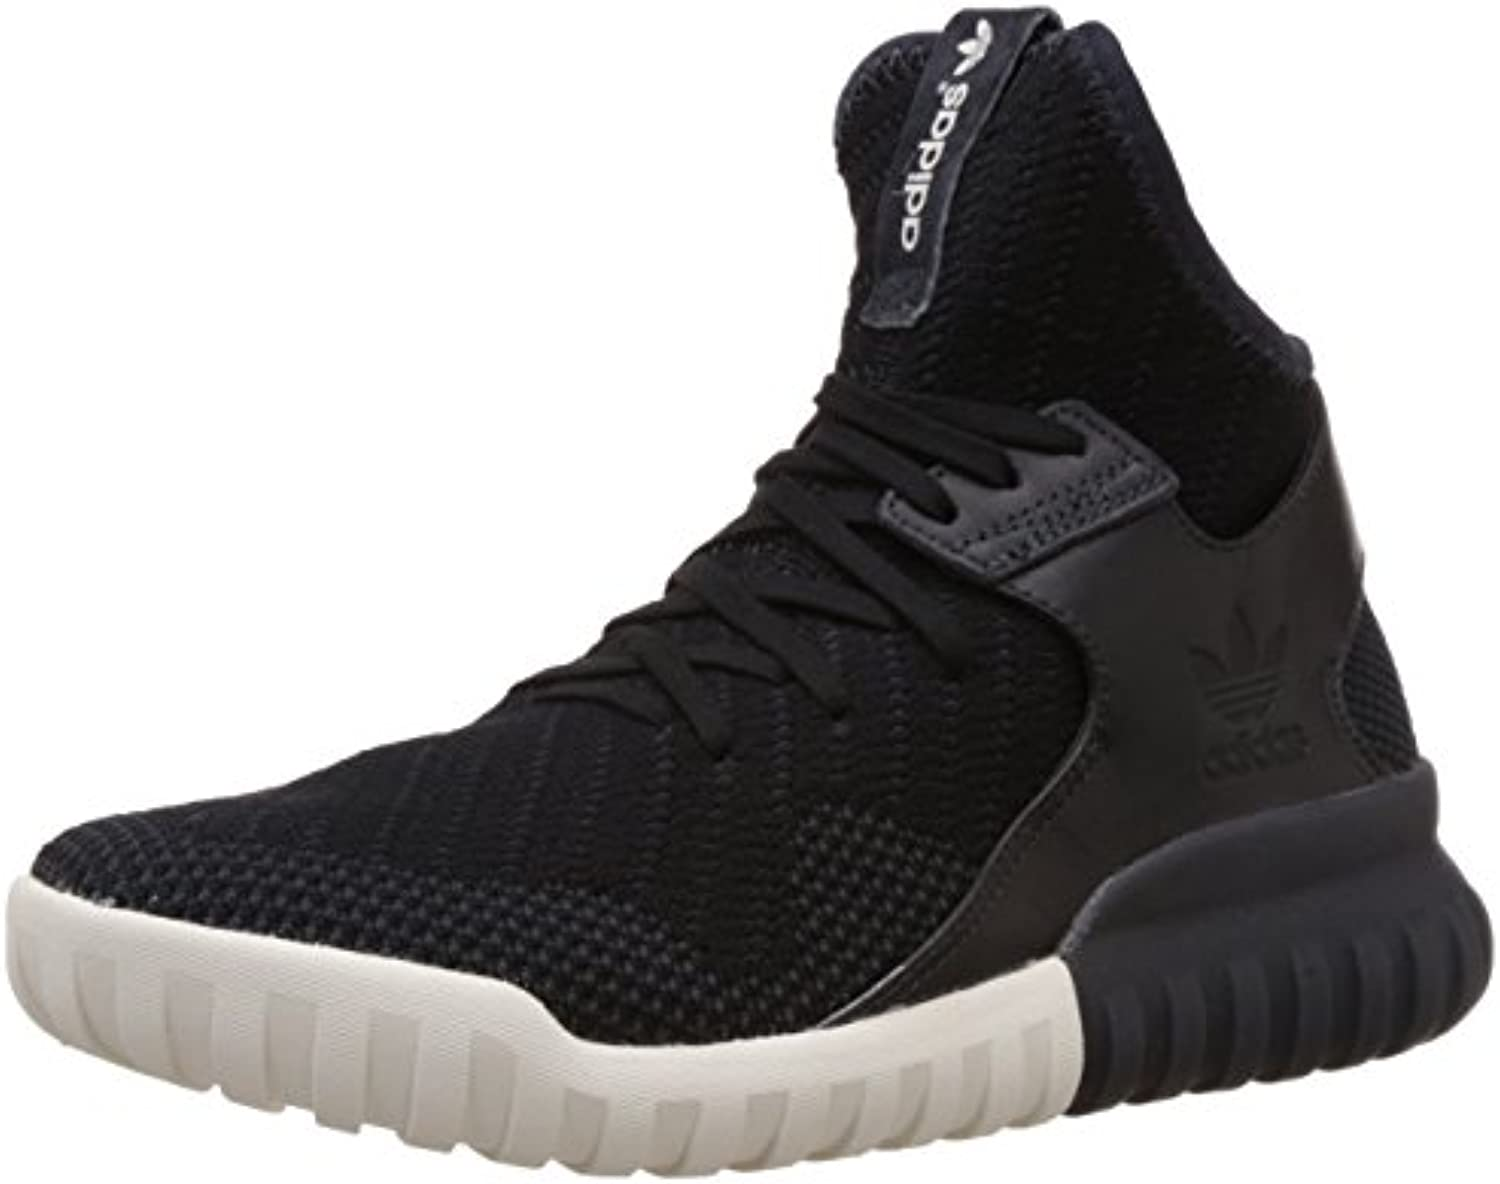 adidas Tubular X Knit Black Carbon Solid Grey -